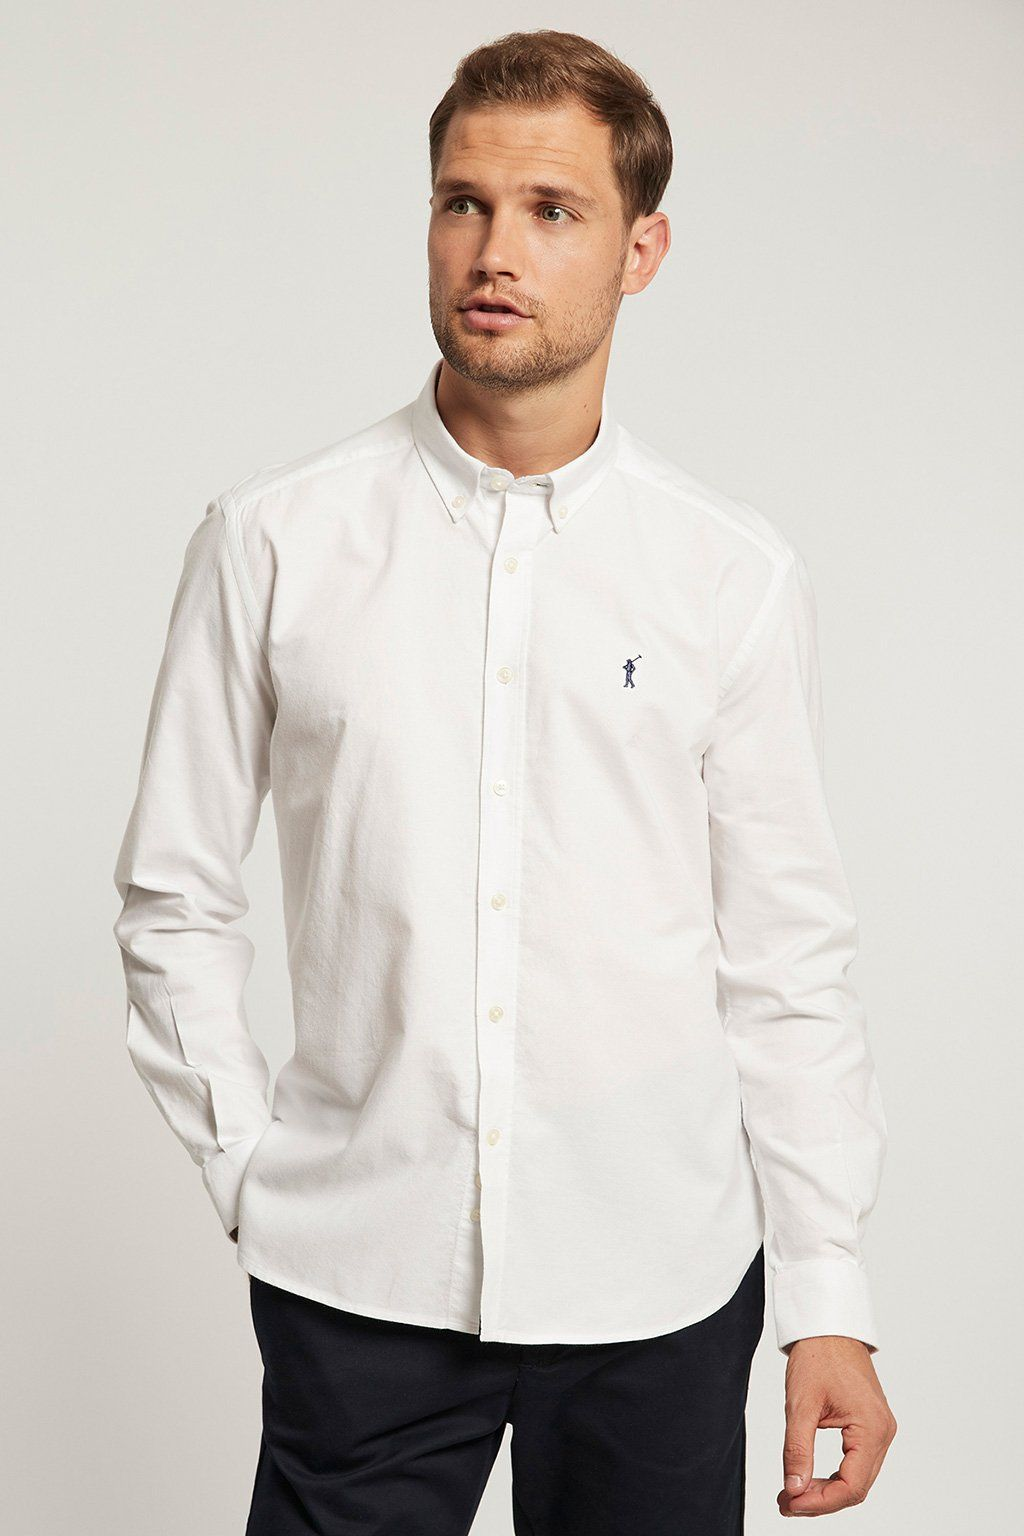 White Oxford shirt with embroidered logo